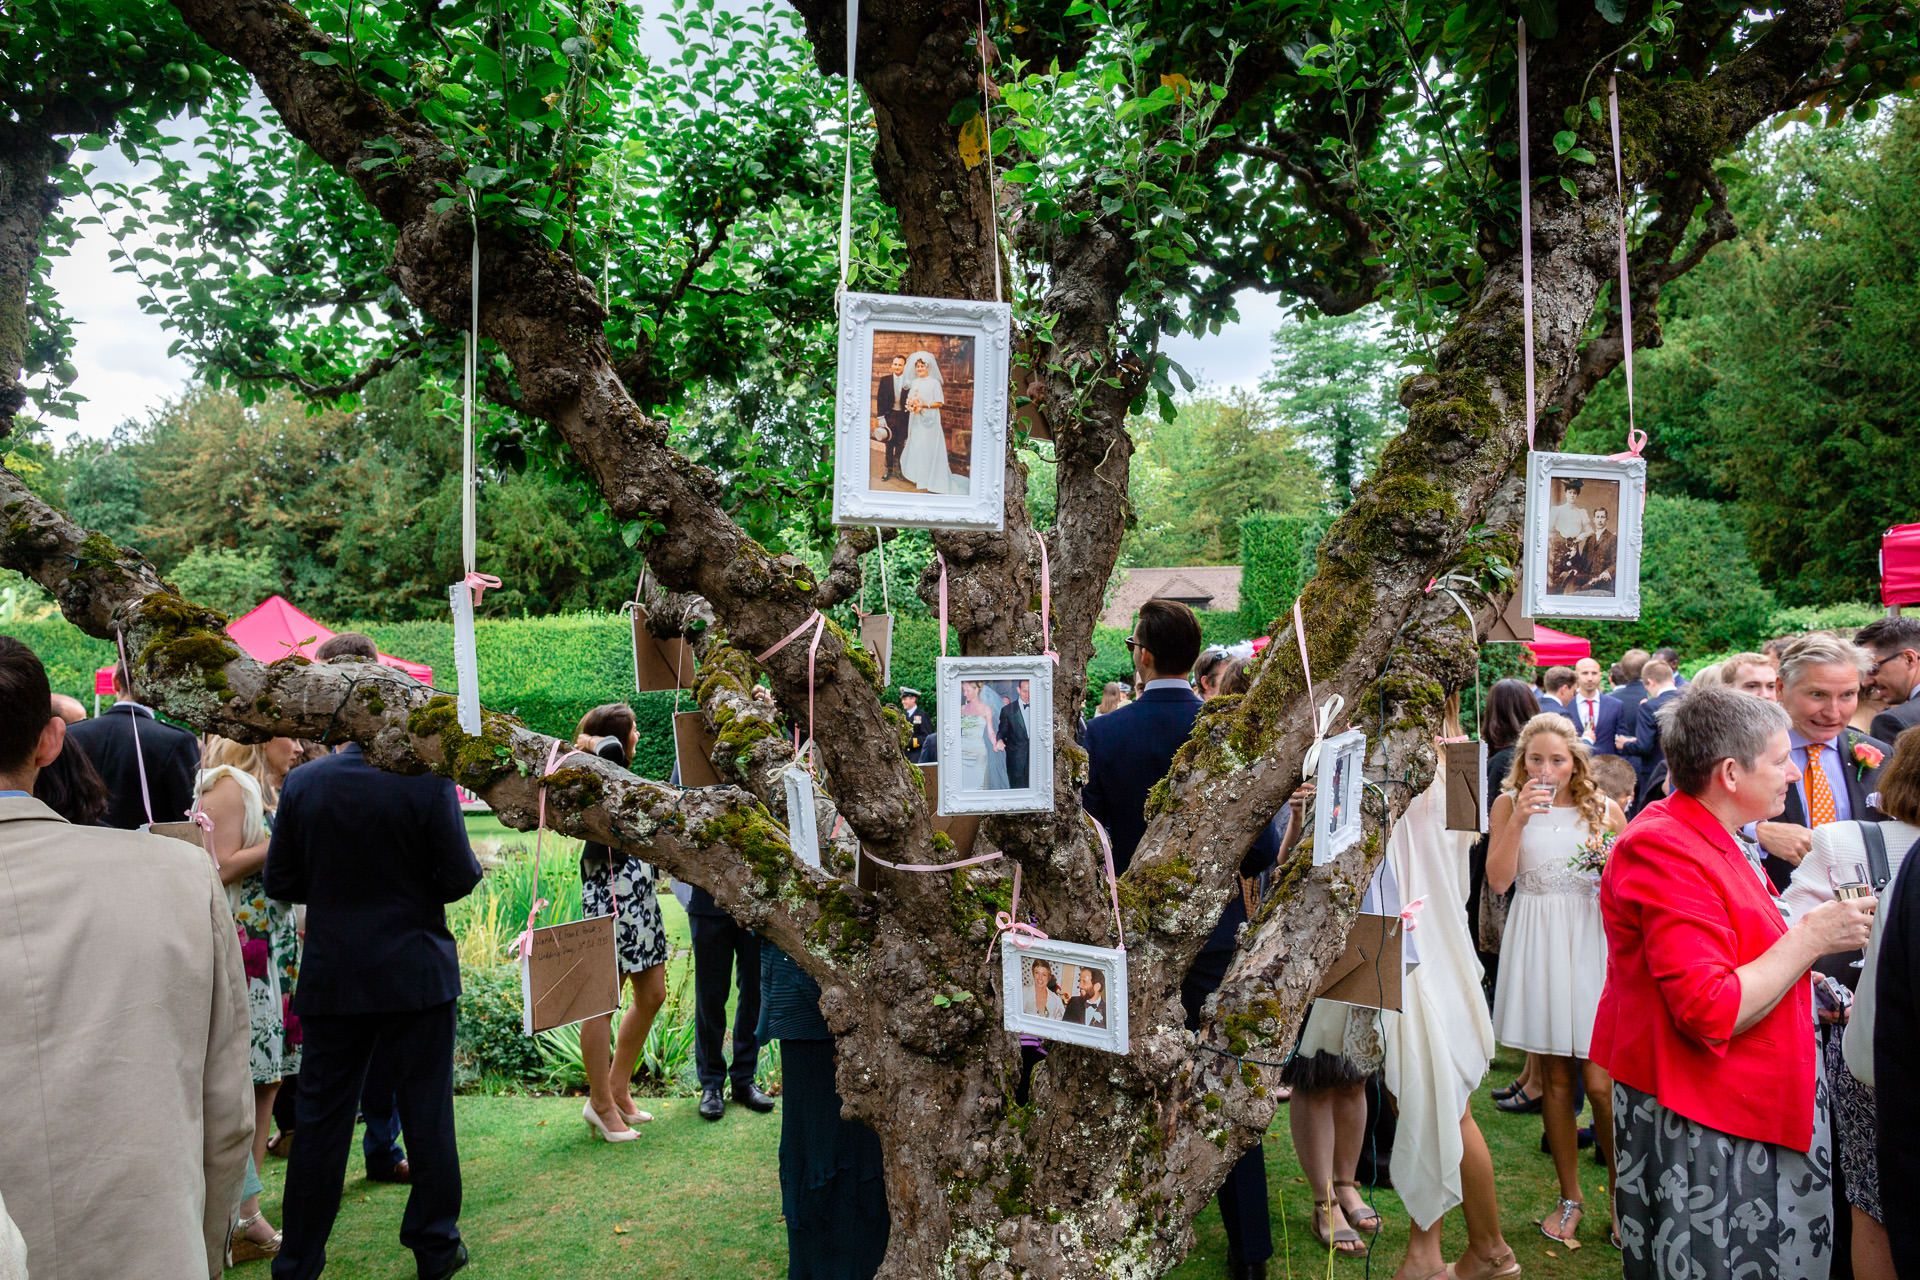 pictures on the tree